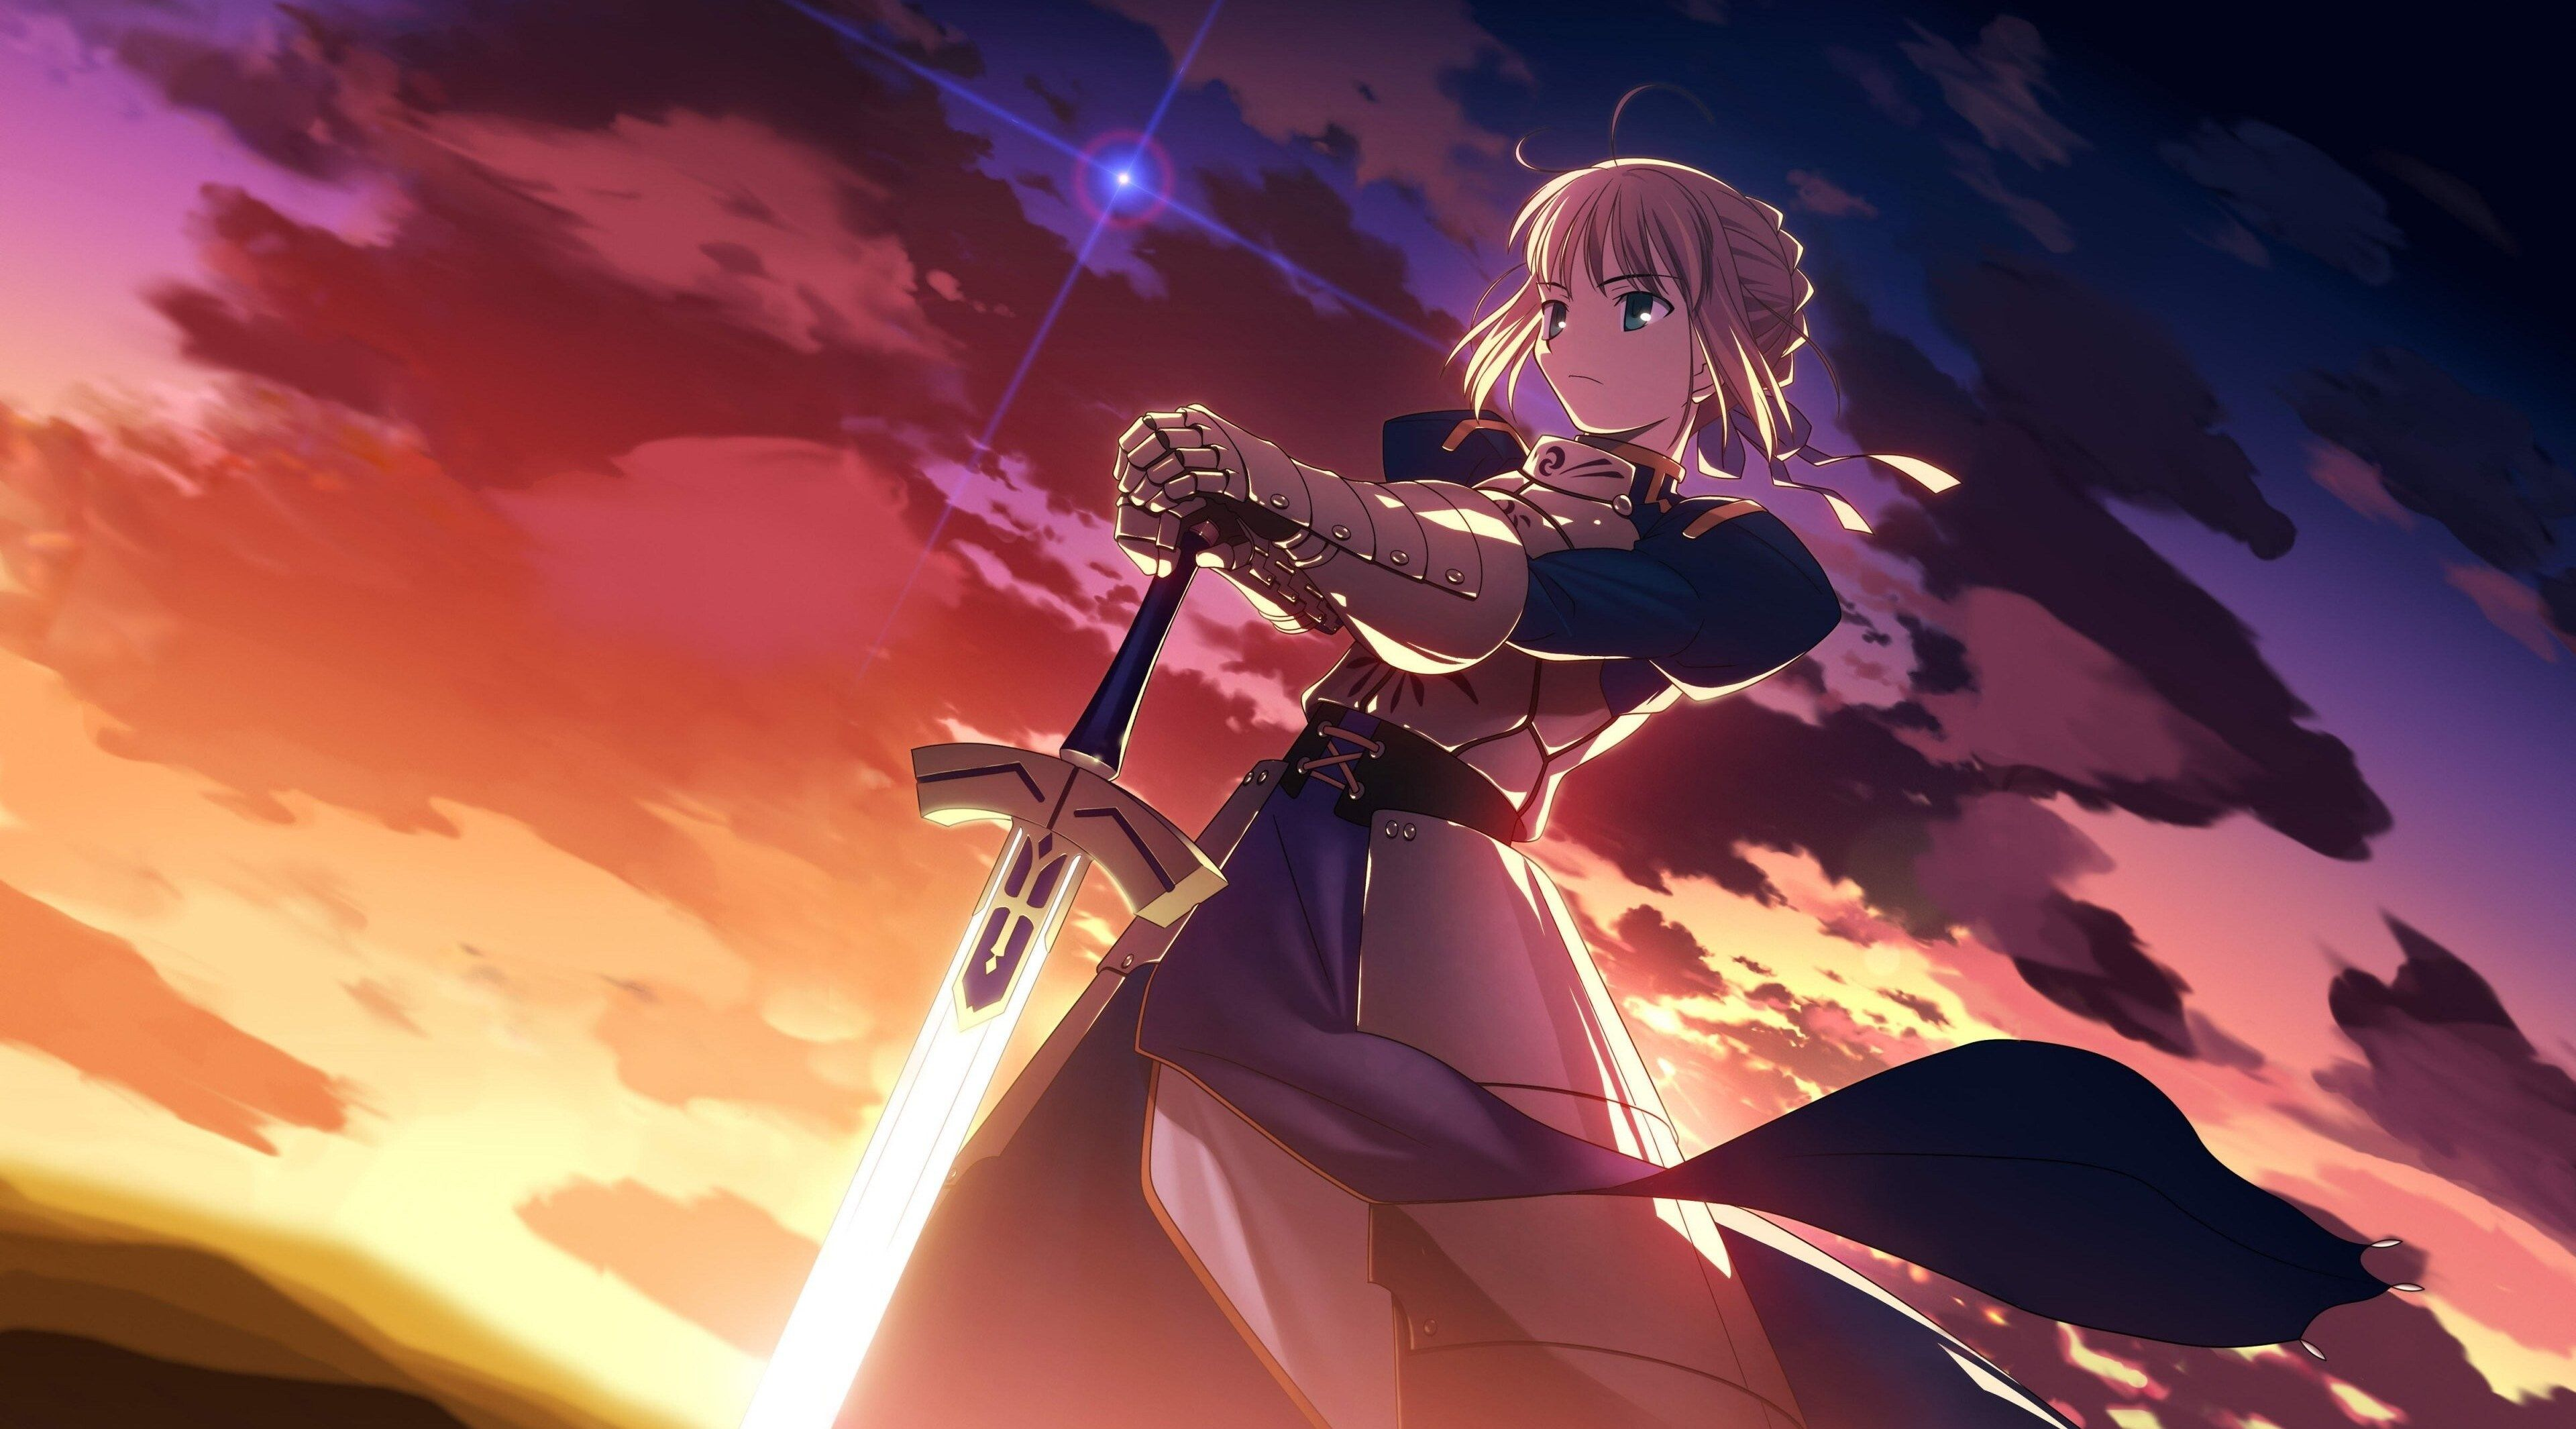 3840x2130 Anime 4k Pc Wallpaper Free Anime Wallpaper Anime Warrior Girl Anime Wallpaper Download